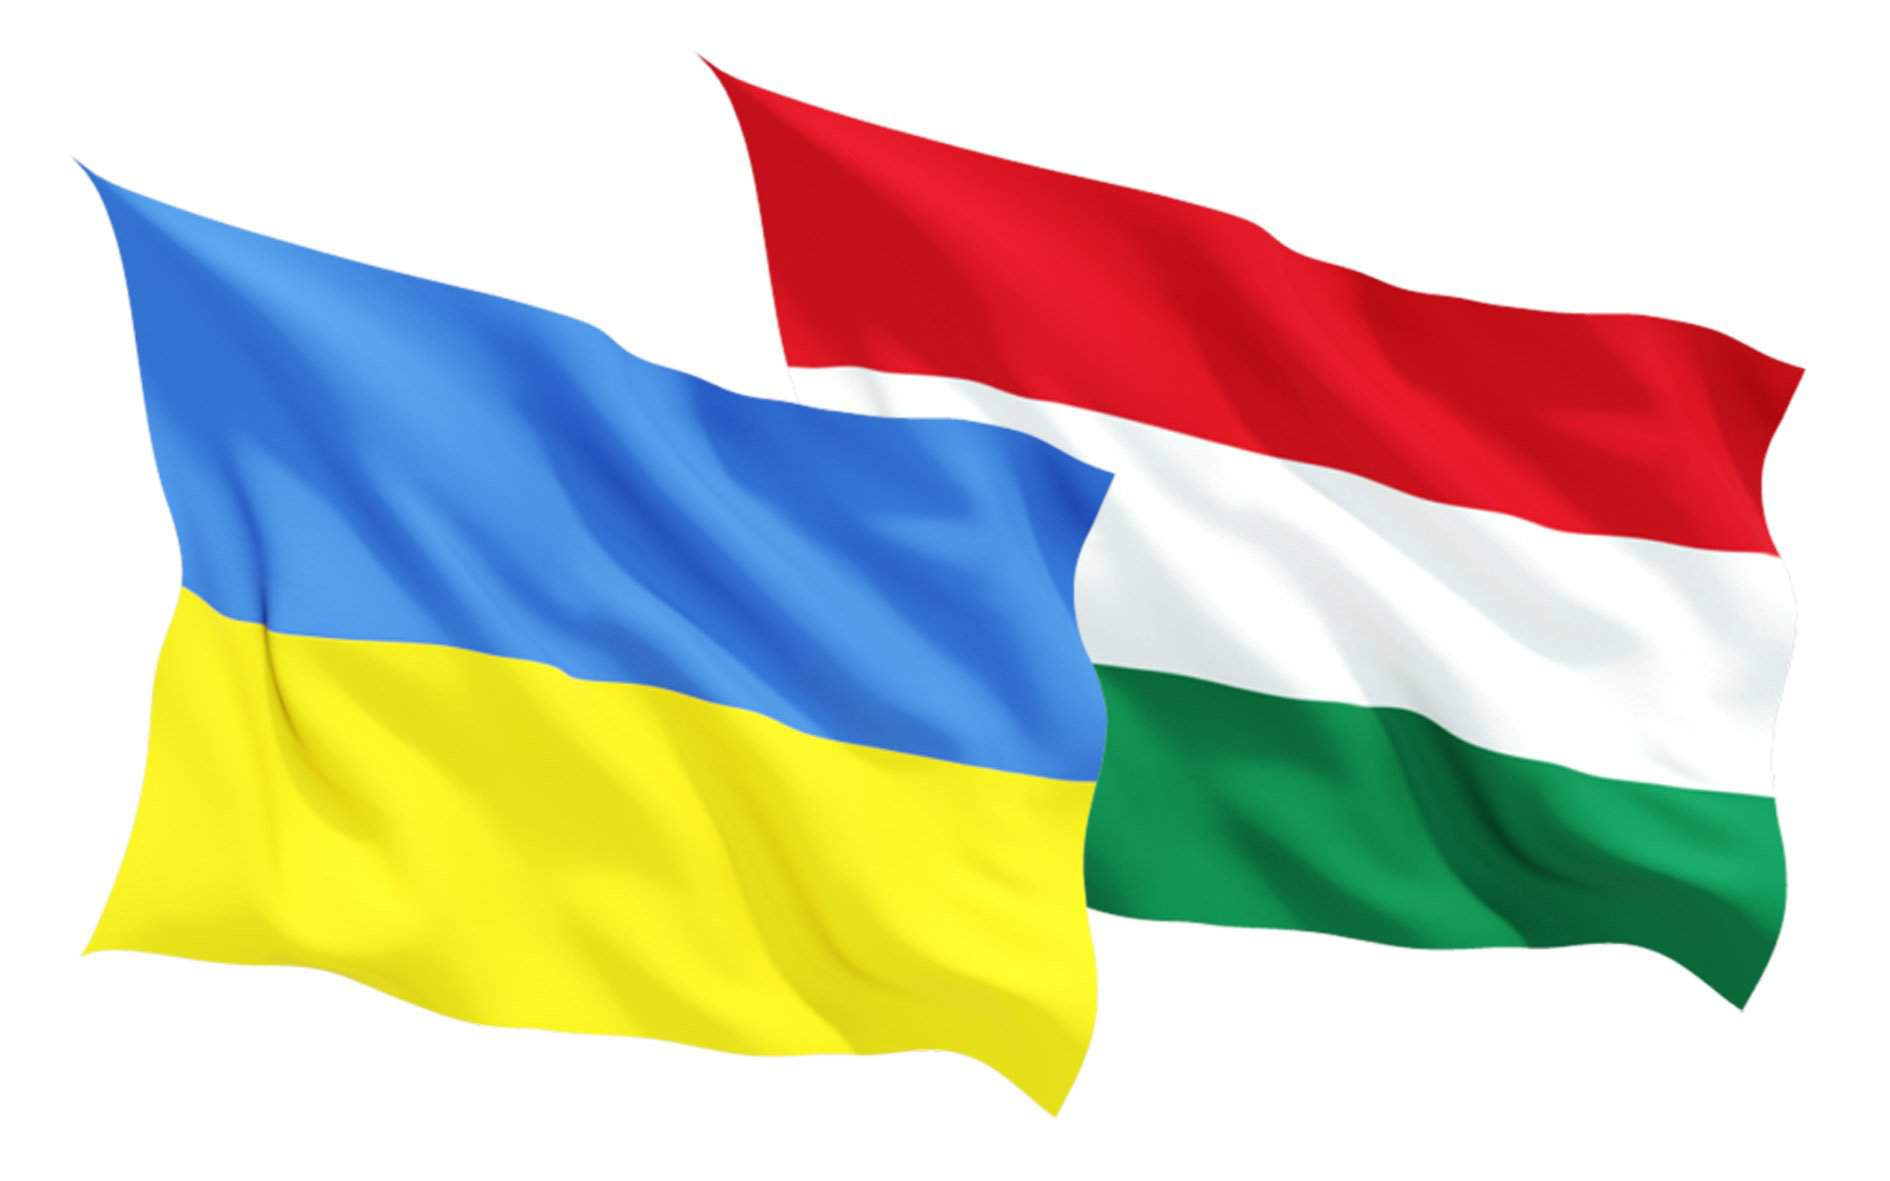 Hungarian cultural season to mark 1956, diplomatic ties in Ukraine